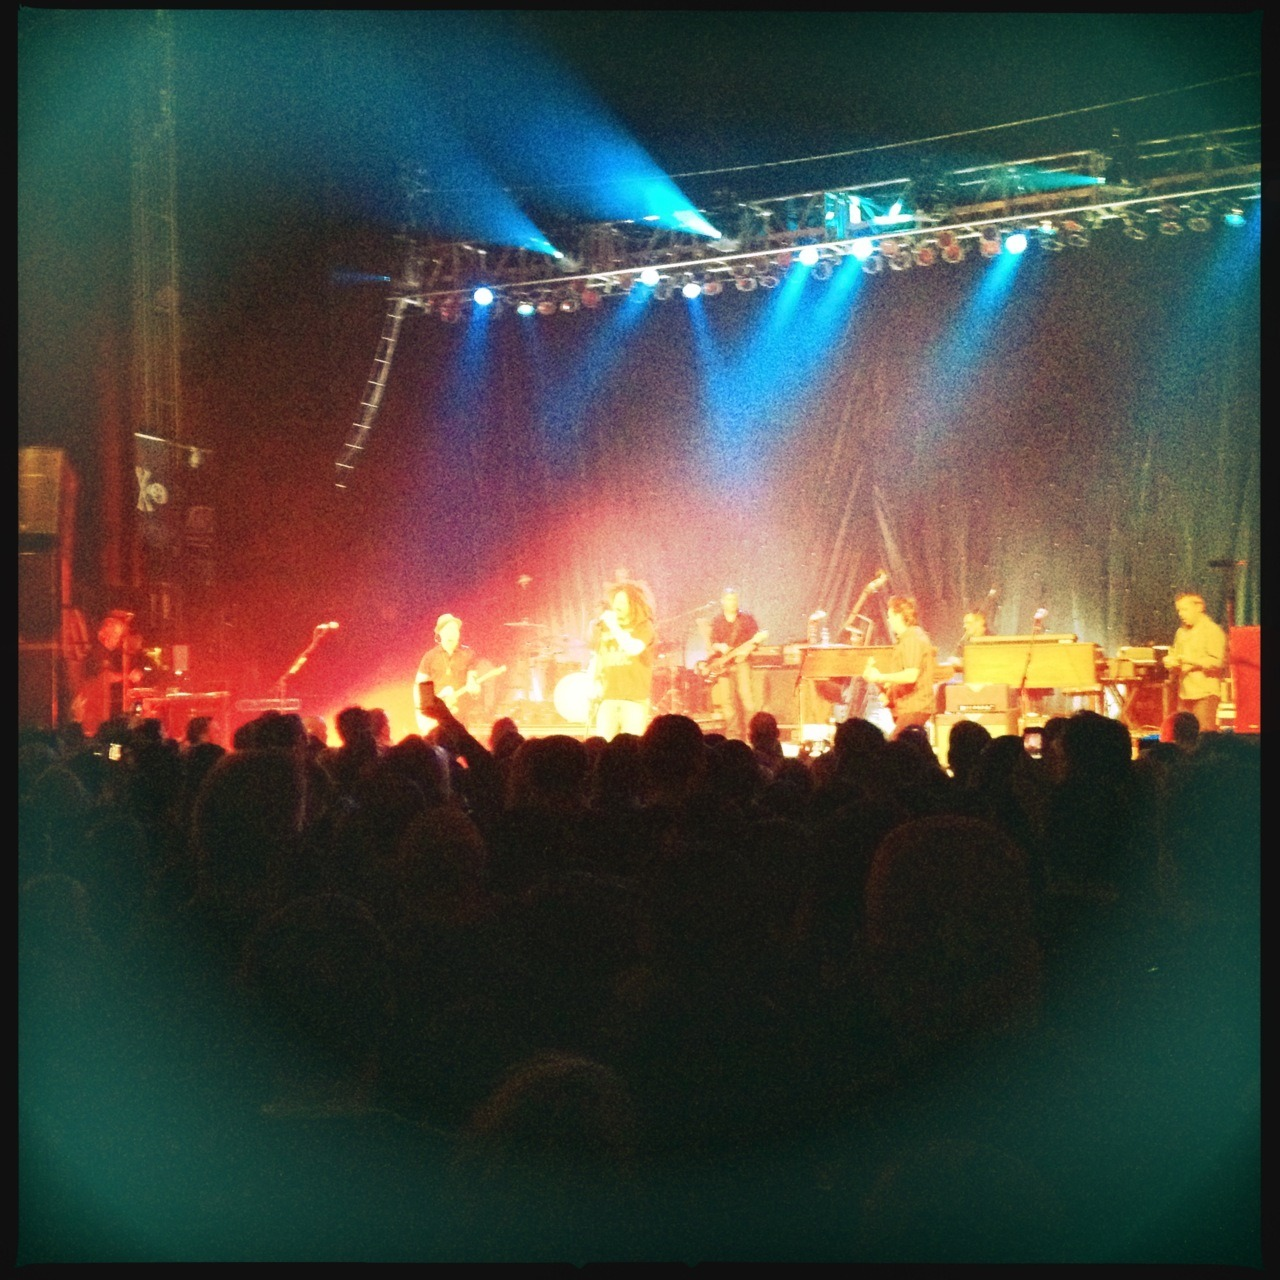 #CountingCrows Jimmy Lens, DC Film, No Flash, Taken with Hipstamatic